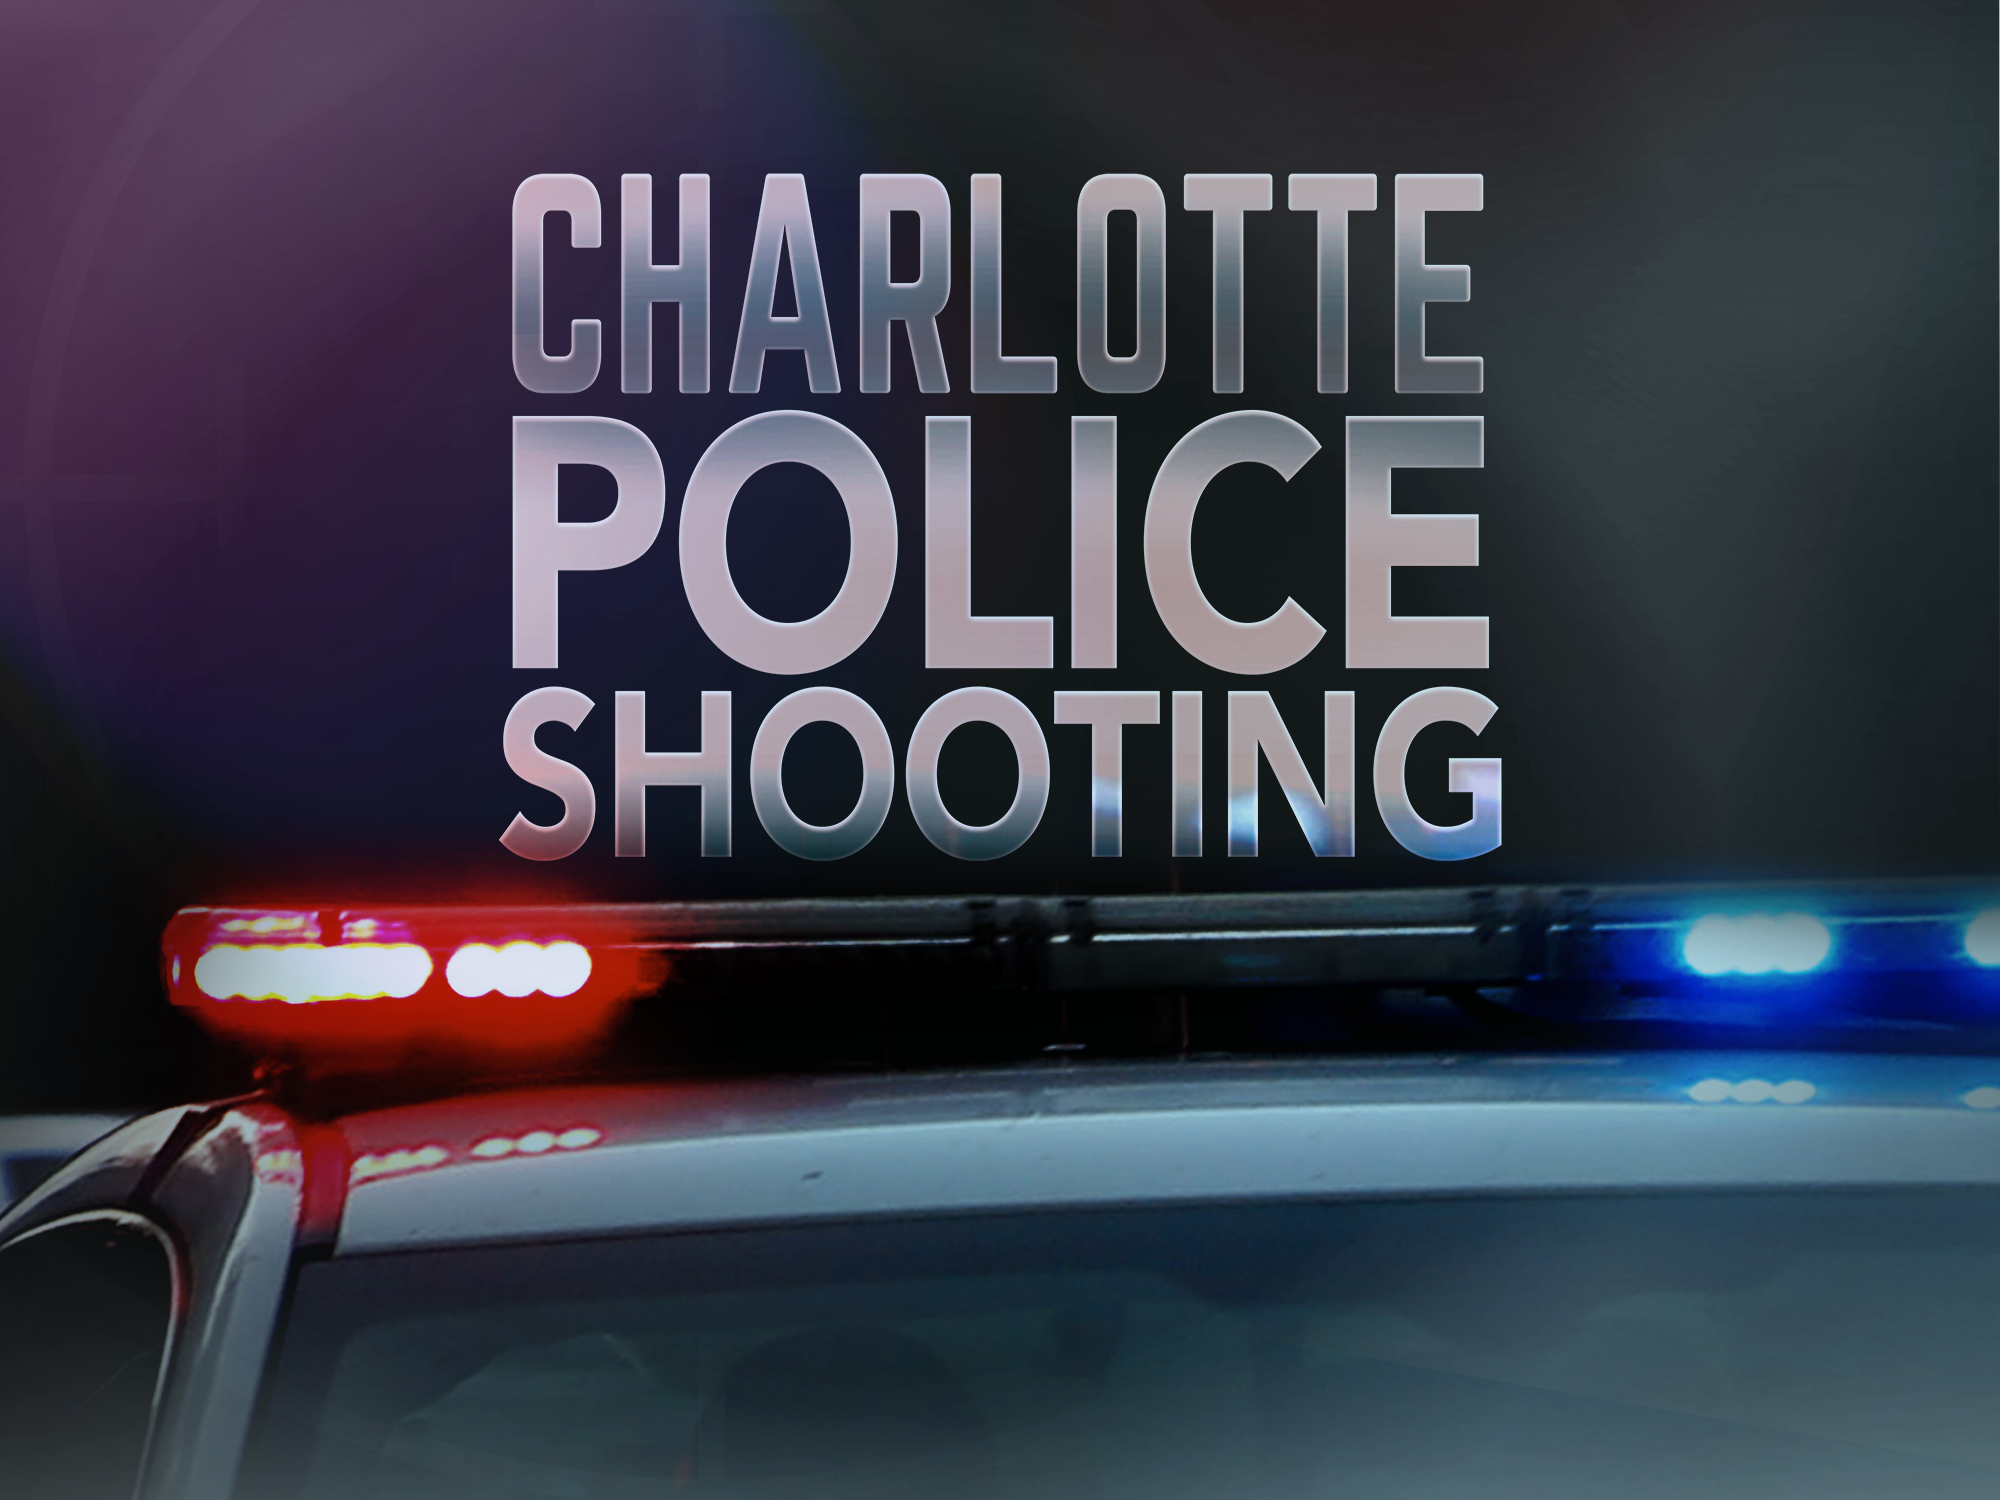 Prosecutor Holds Announcement on Charlotte Police Shooting